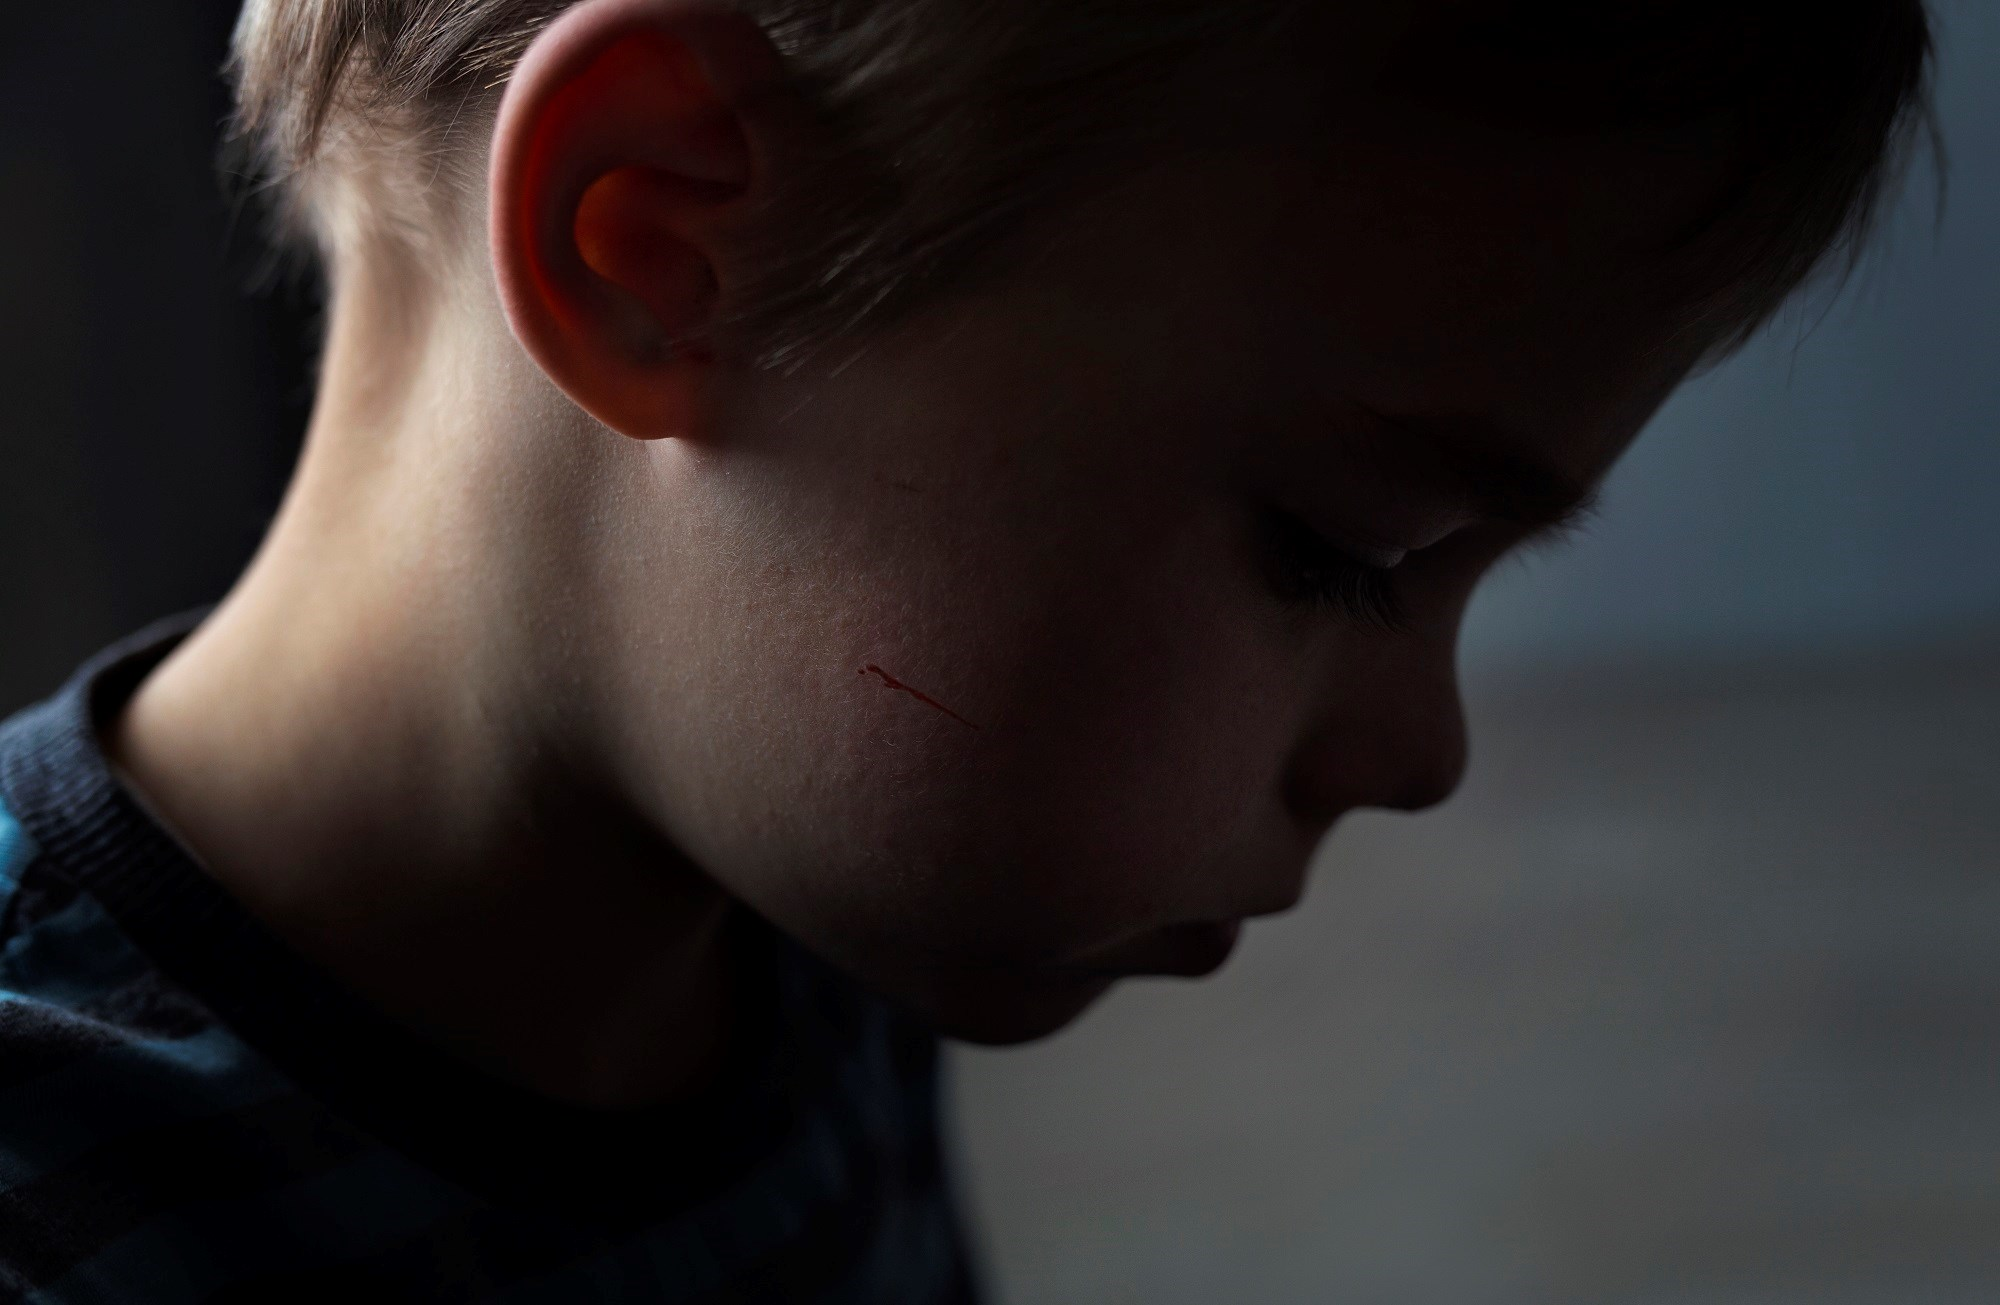 Depression in early childhood bears behavioral and brain similarities to depression in adolescents and adults, but few interventions have been substantiated for that age group.